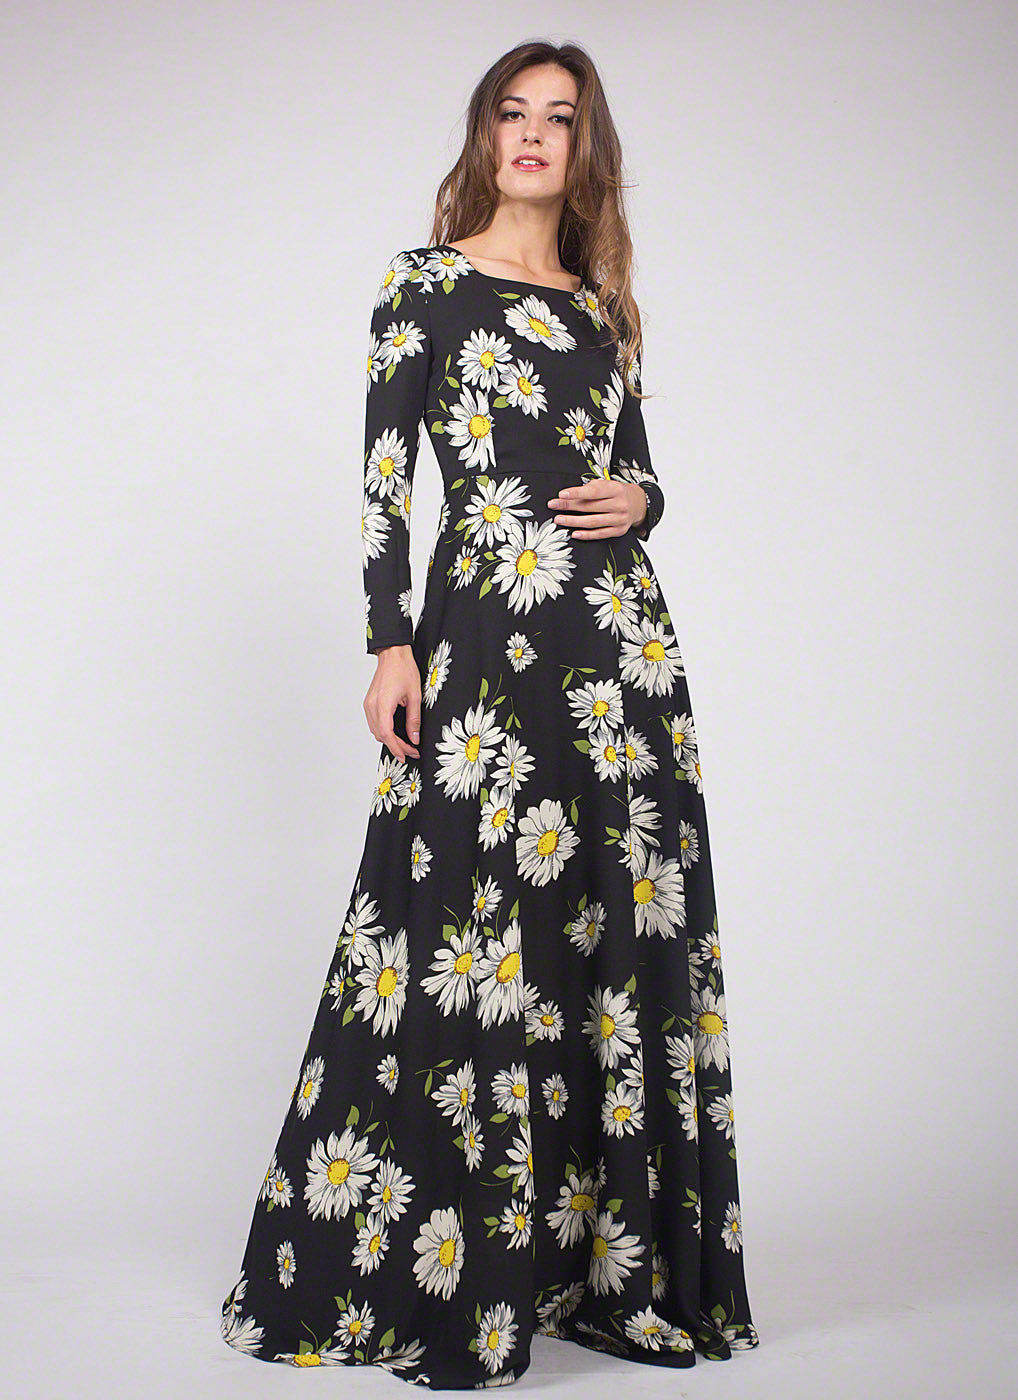 5b2a52cefc4 Floor Length Black Daisy Print Maxi Dress  Trendy Long Sleeve Black Bold Floral  Print Maxi